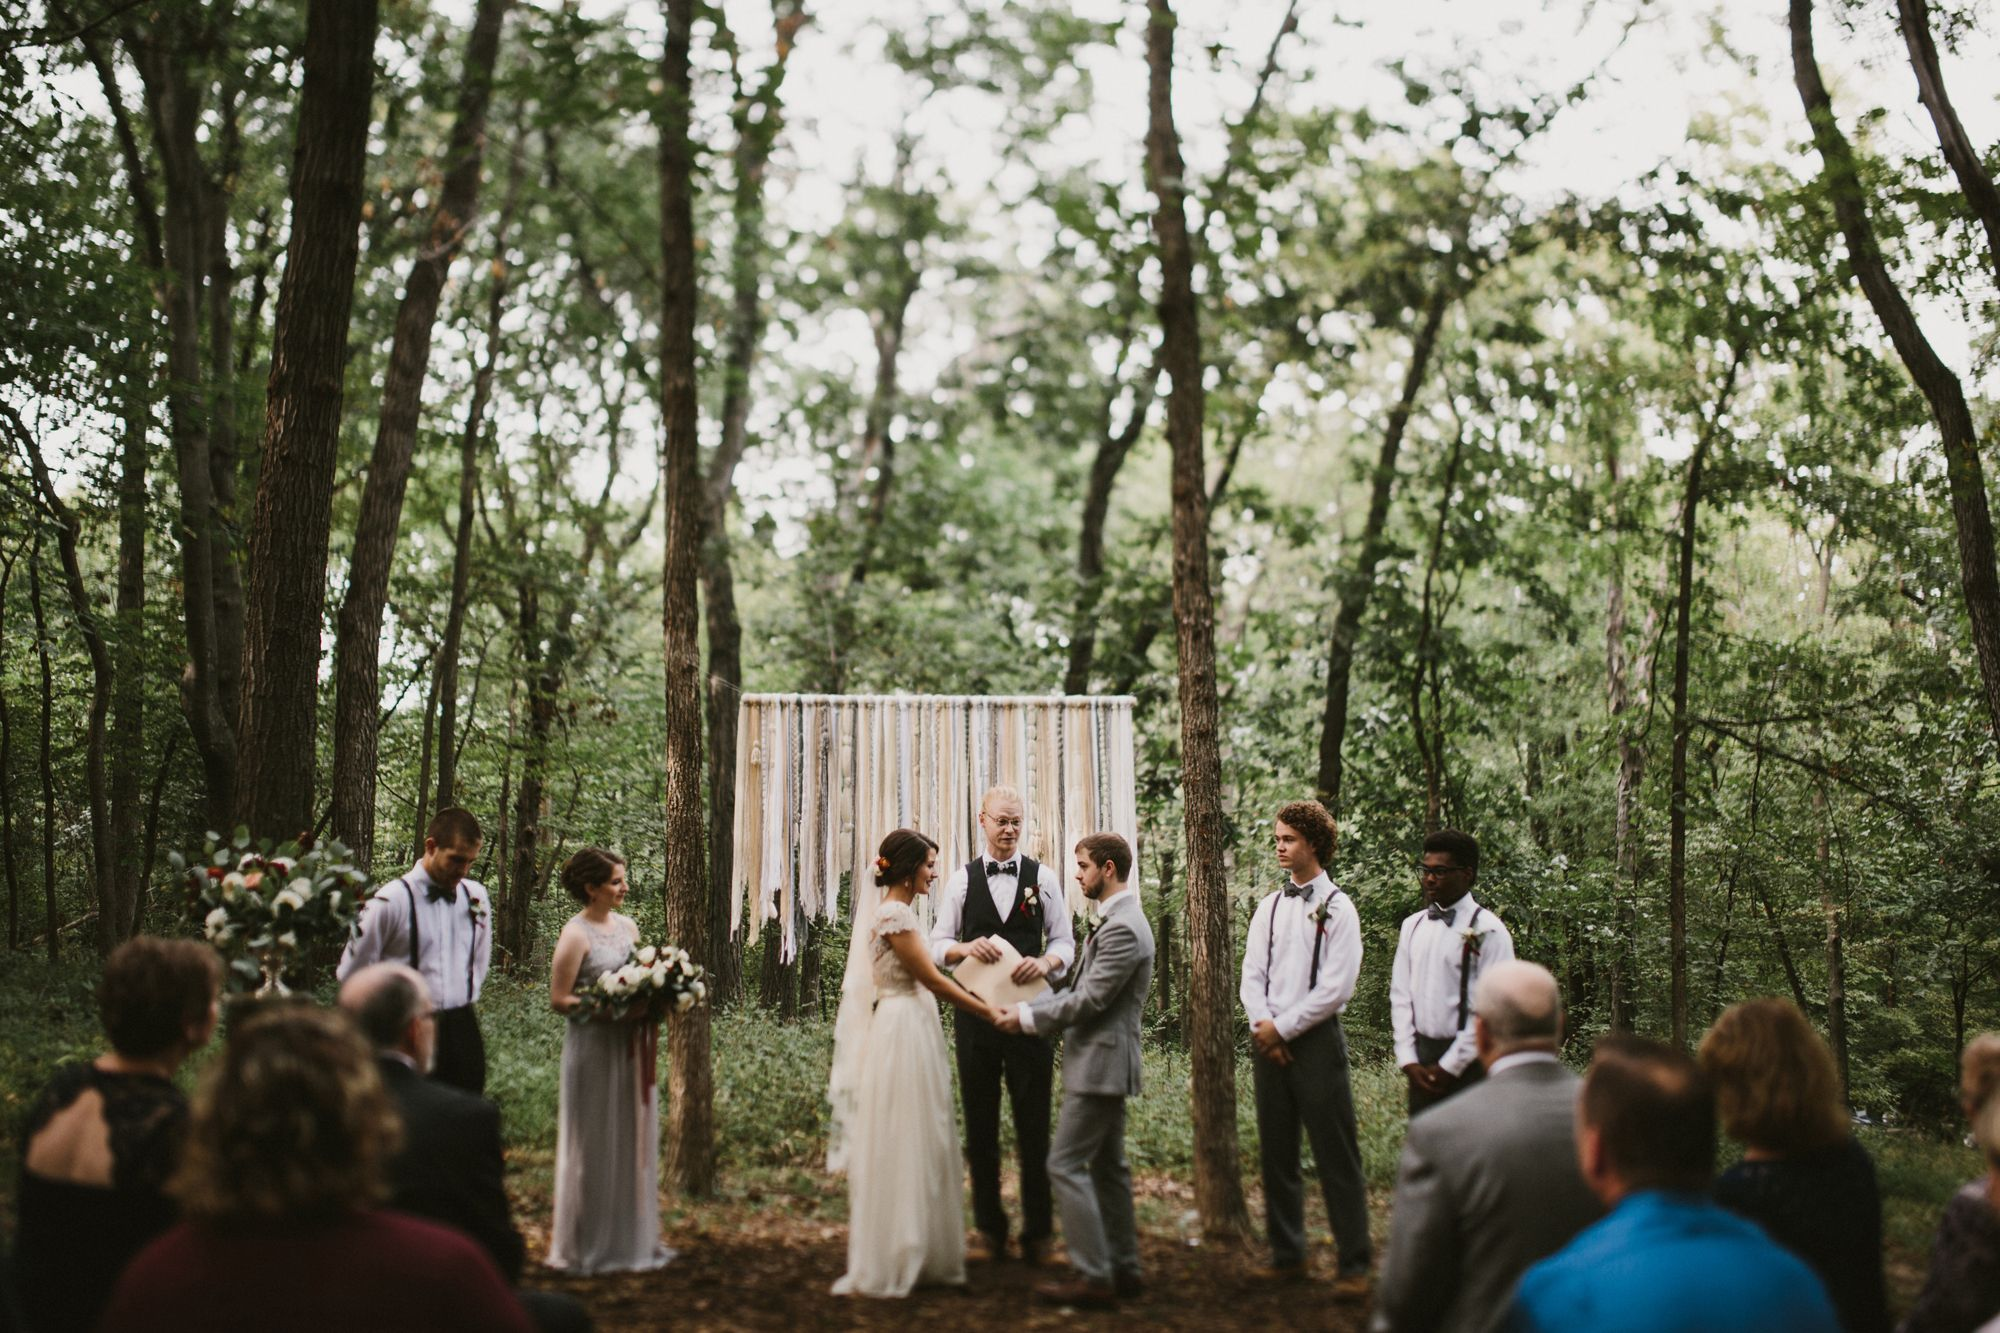 diy backyard wedding in the woods ceremony woven wall hanging